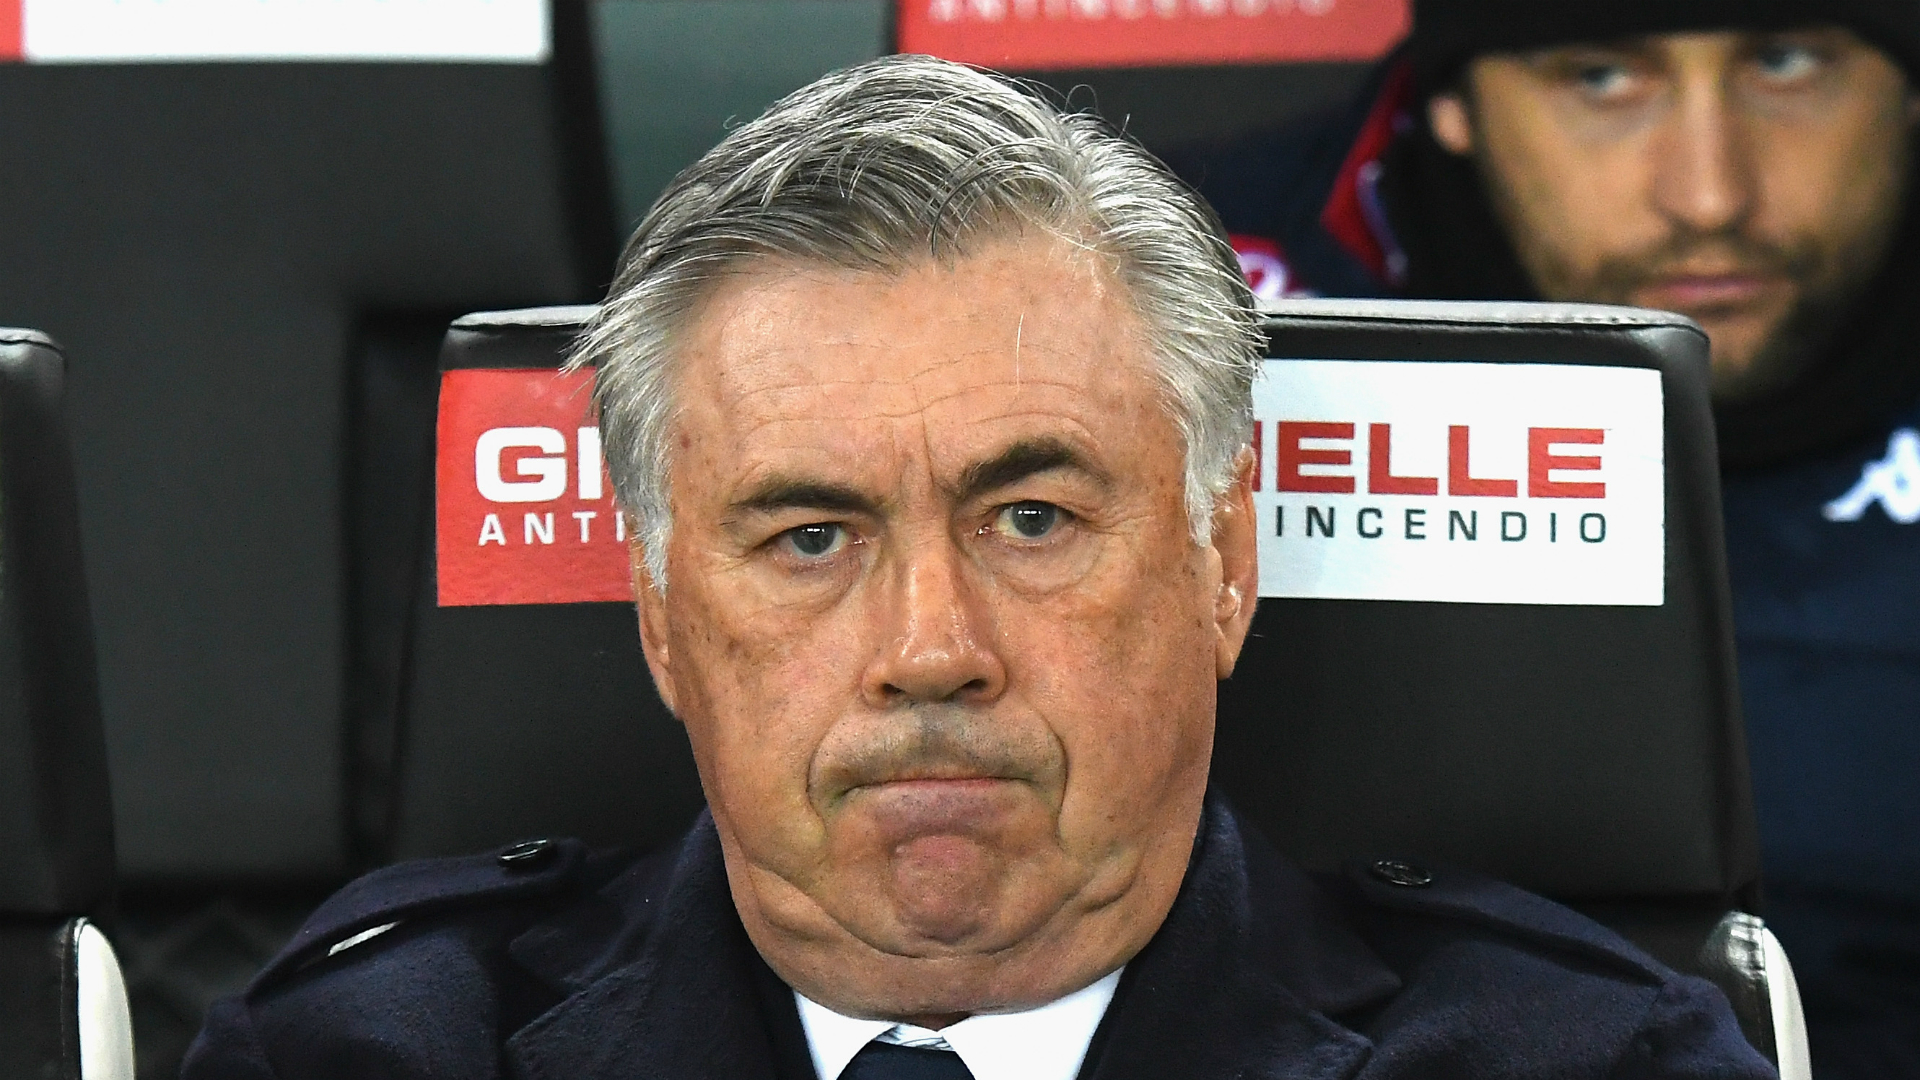 A coach's suitcase is always ready - Ancelotti 'not scared' of Gattuso replacement talk